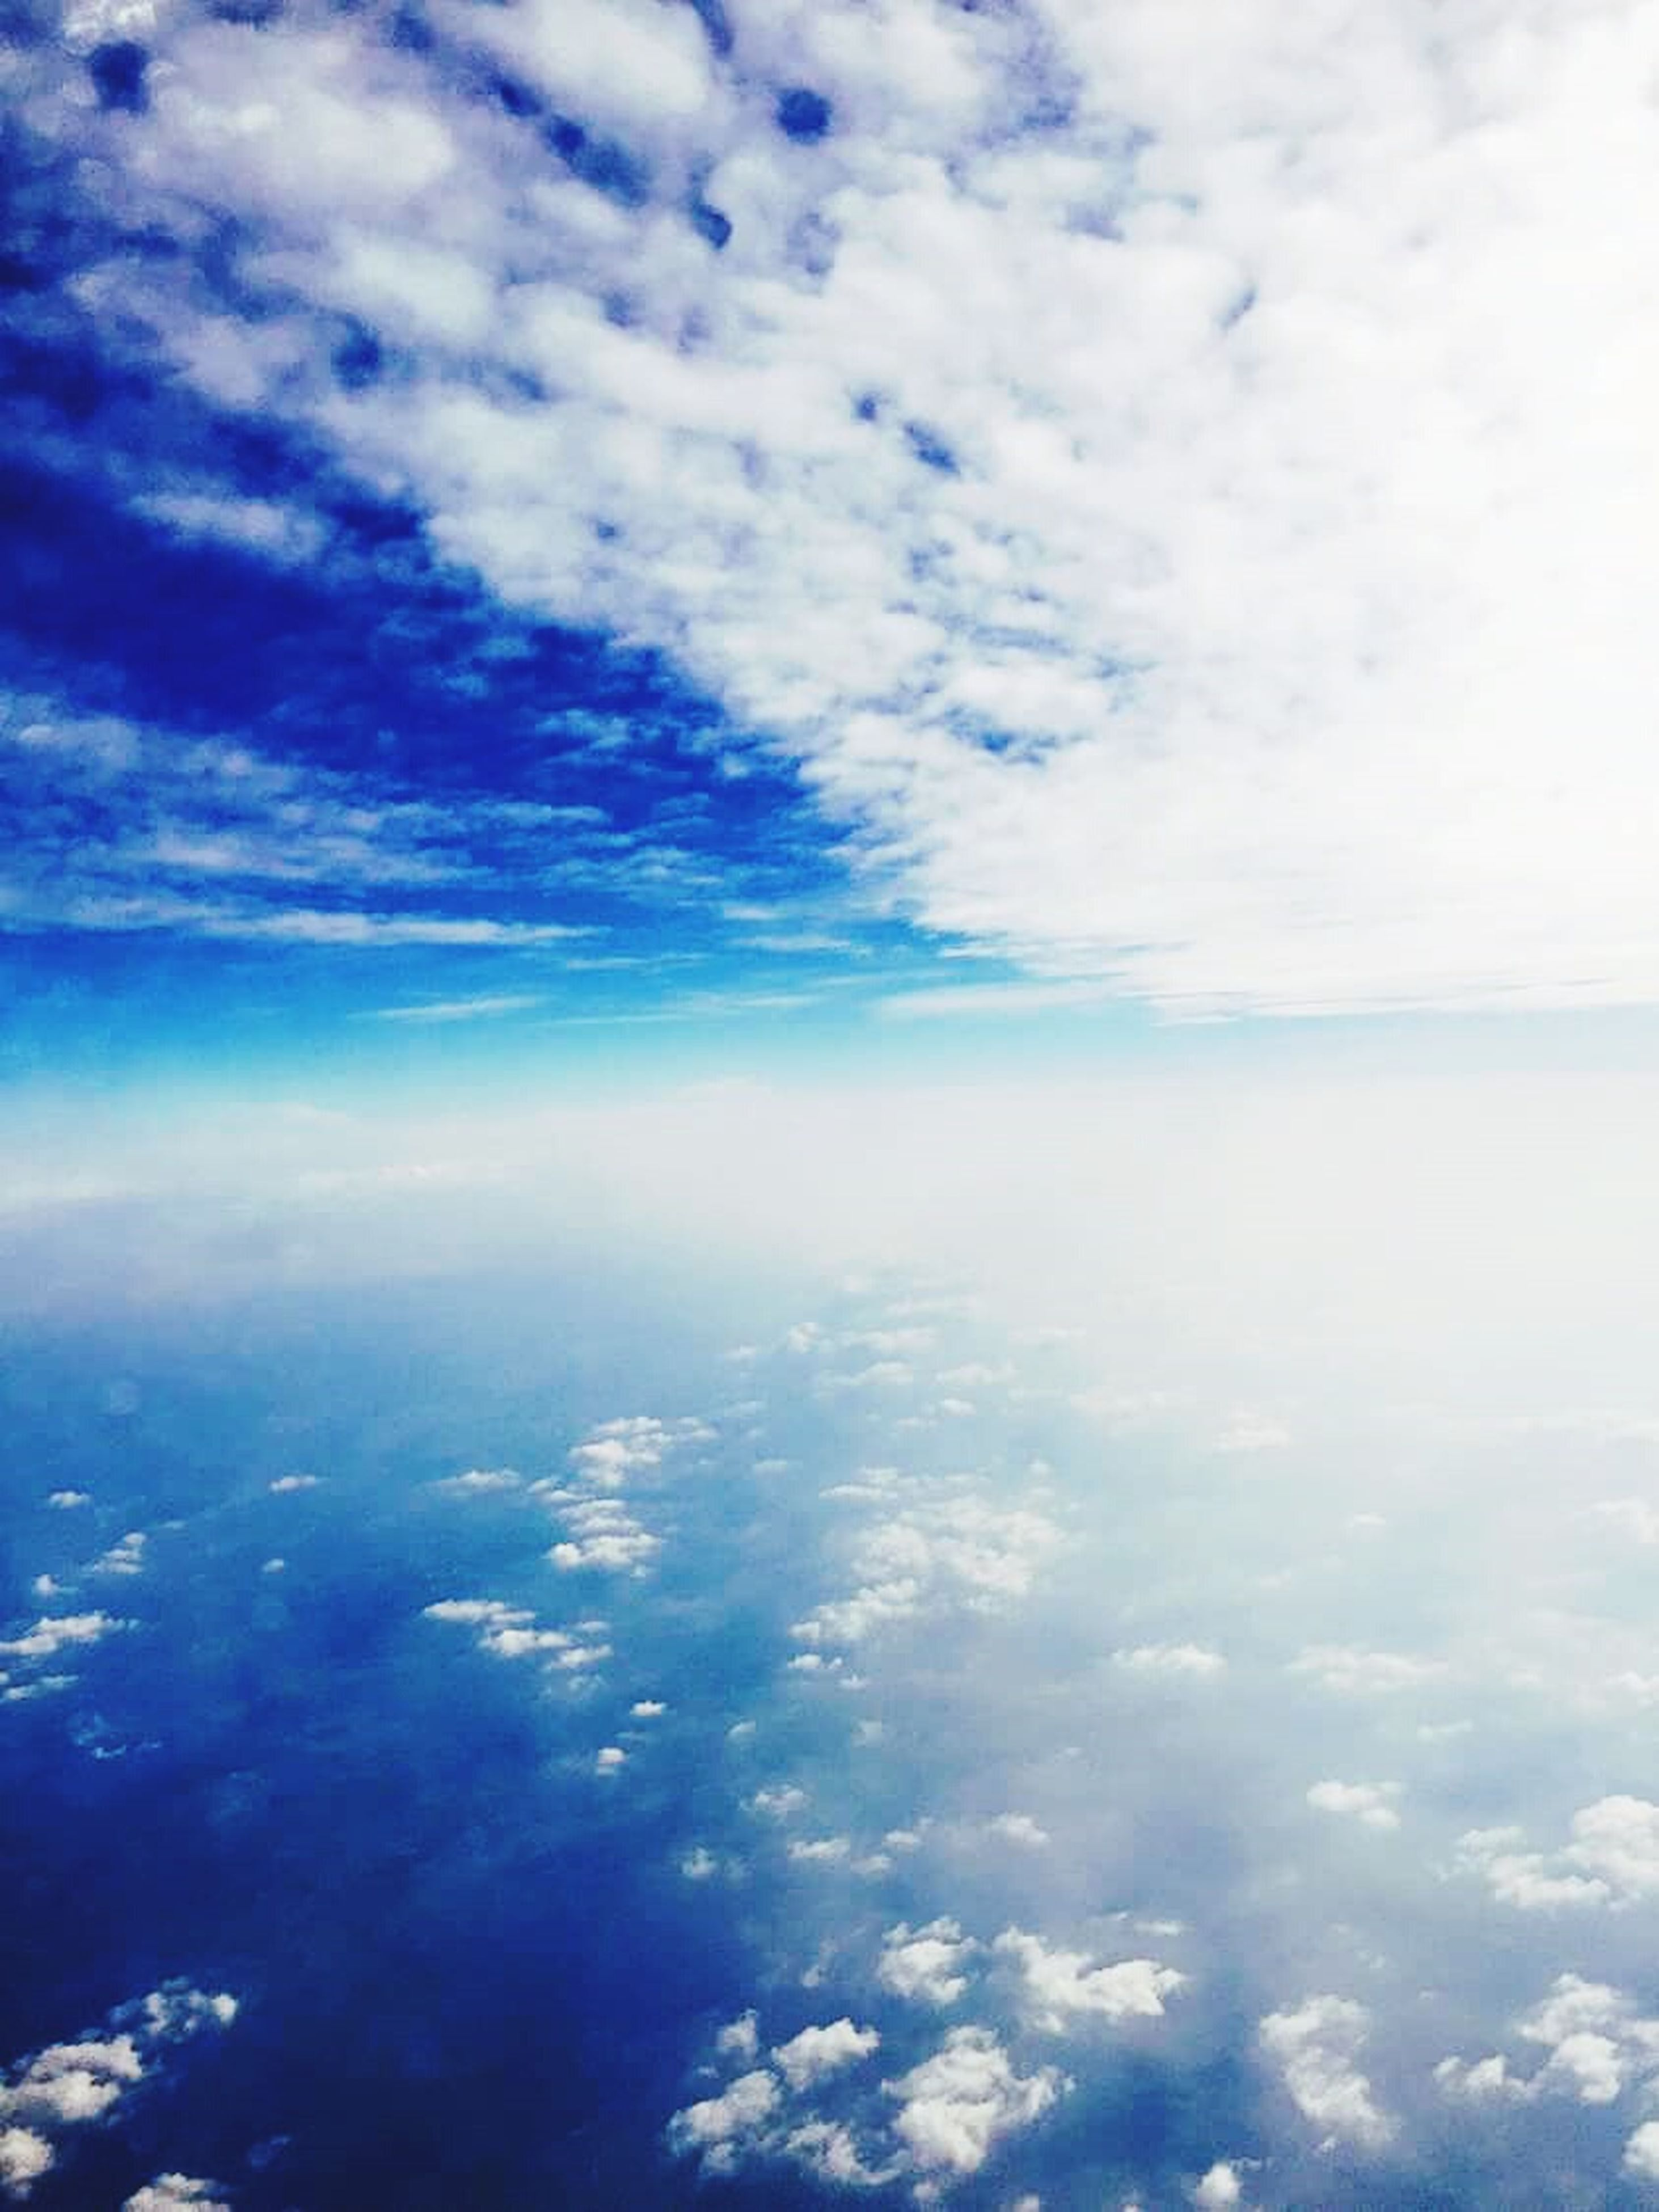 sky, scenics, beauty in nature, tranquil scene, tranquility, cloud - sky, nature, blue, cloudy, cloud, idyllic, sea, cloudscape, water, day, outdoors, backgrounds, white color, no people, aerial view